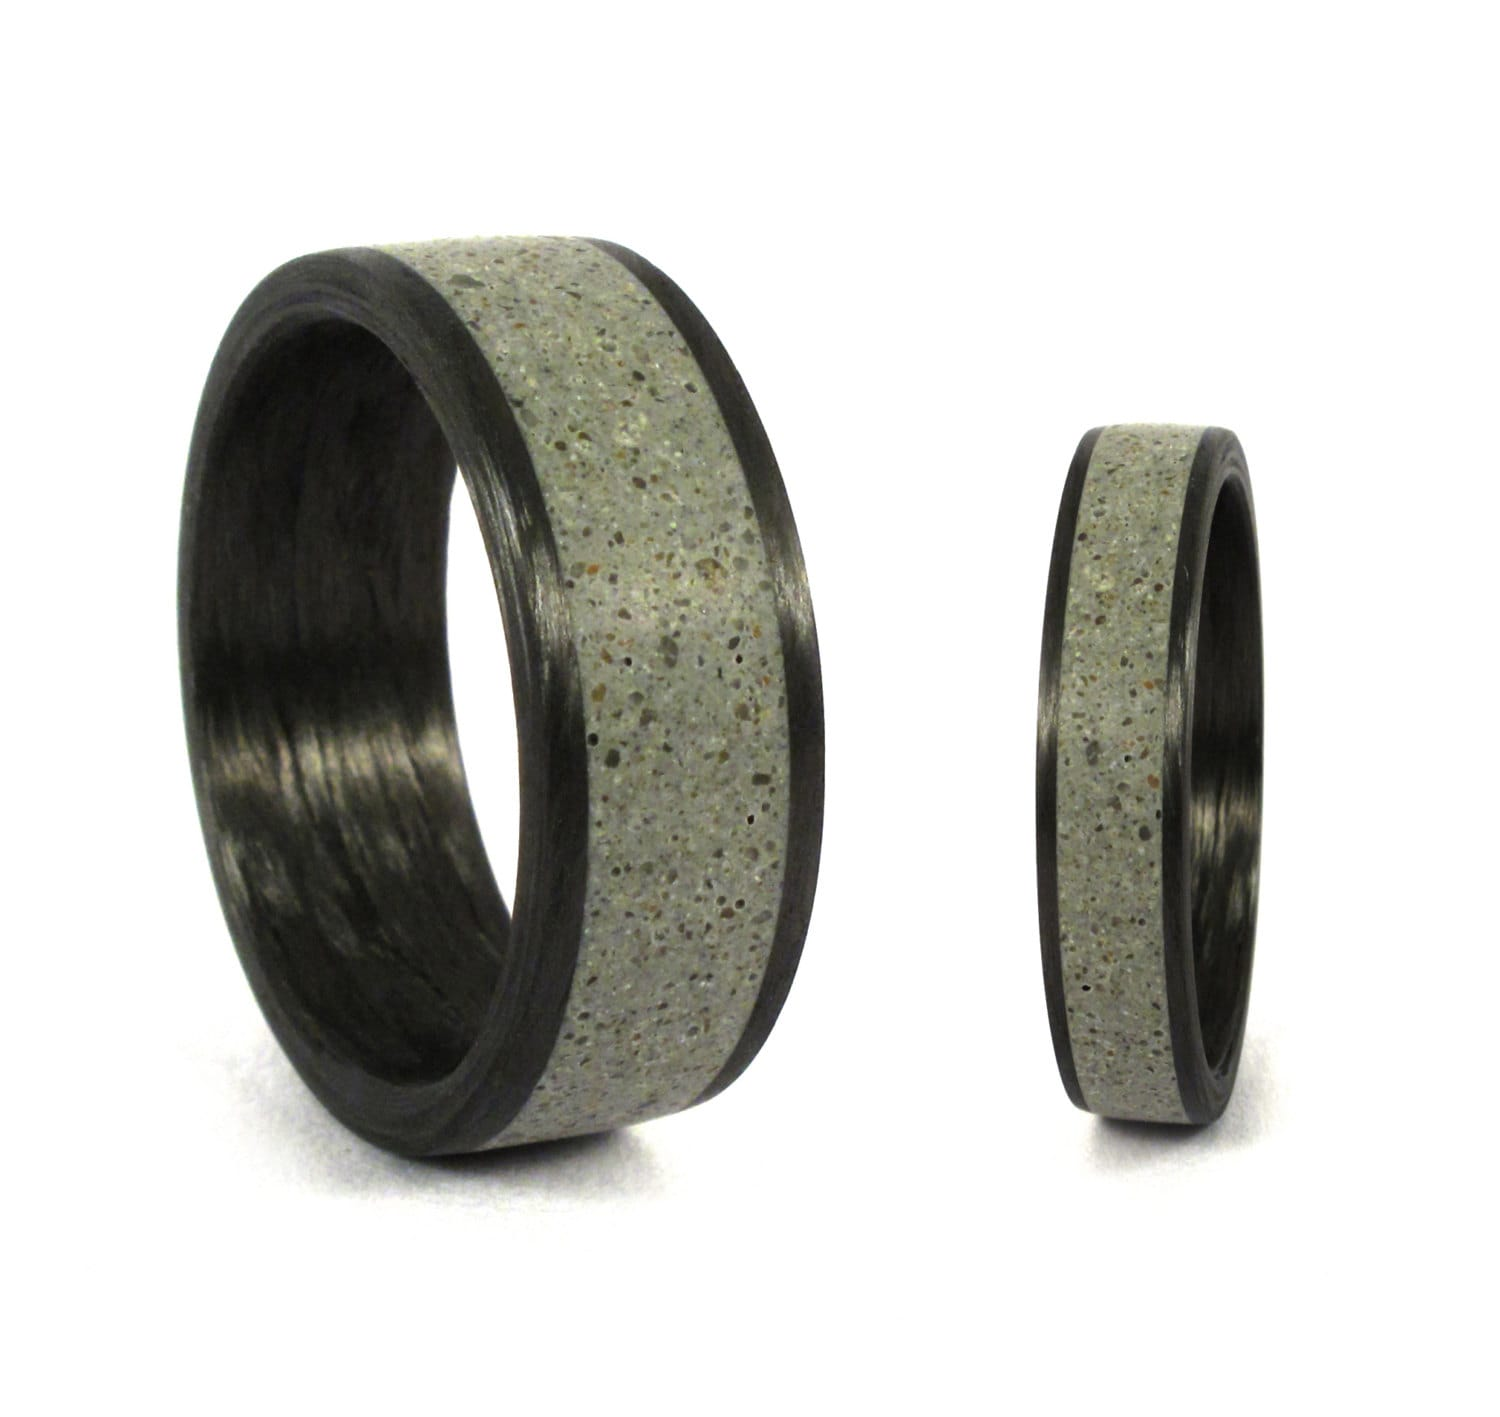 nexring products a wedding finish ring lotus m rings weave r fiber matte carbon band